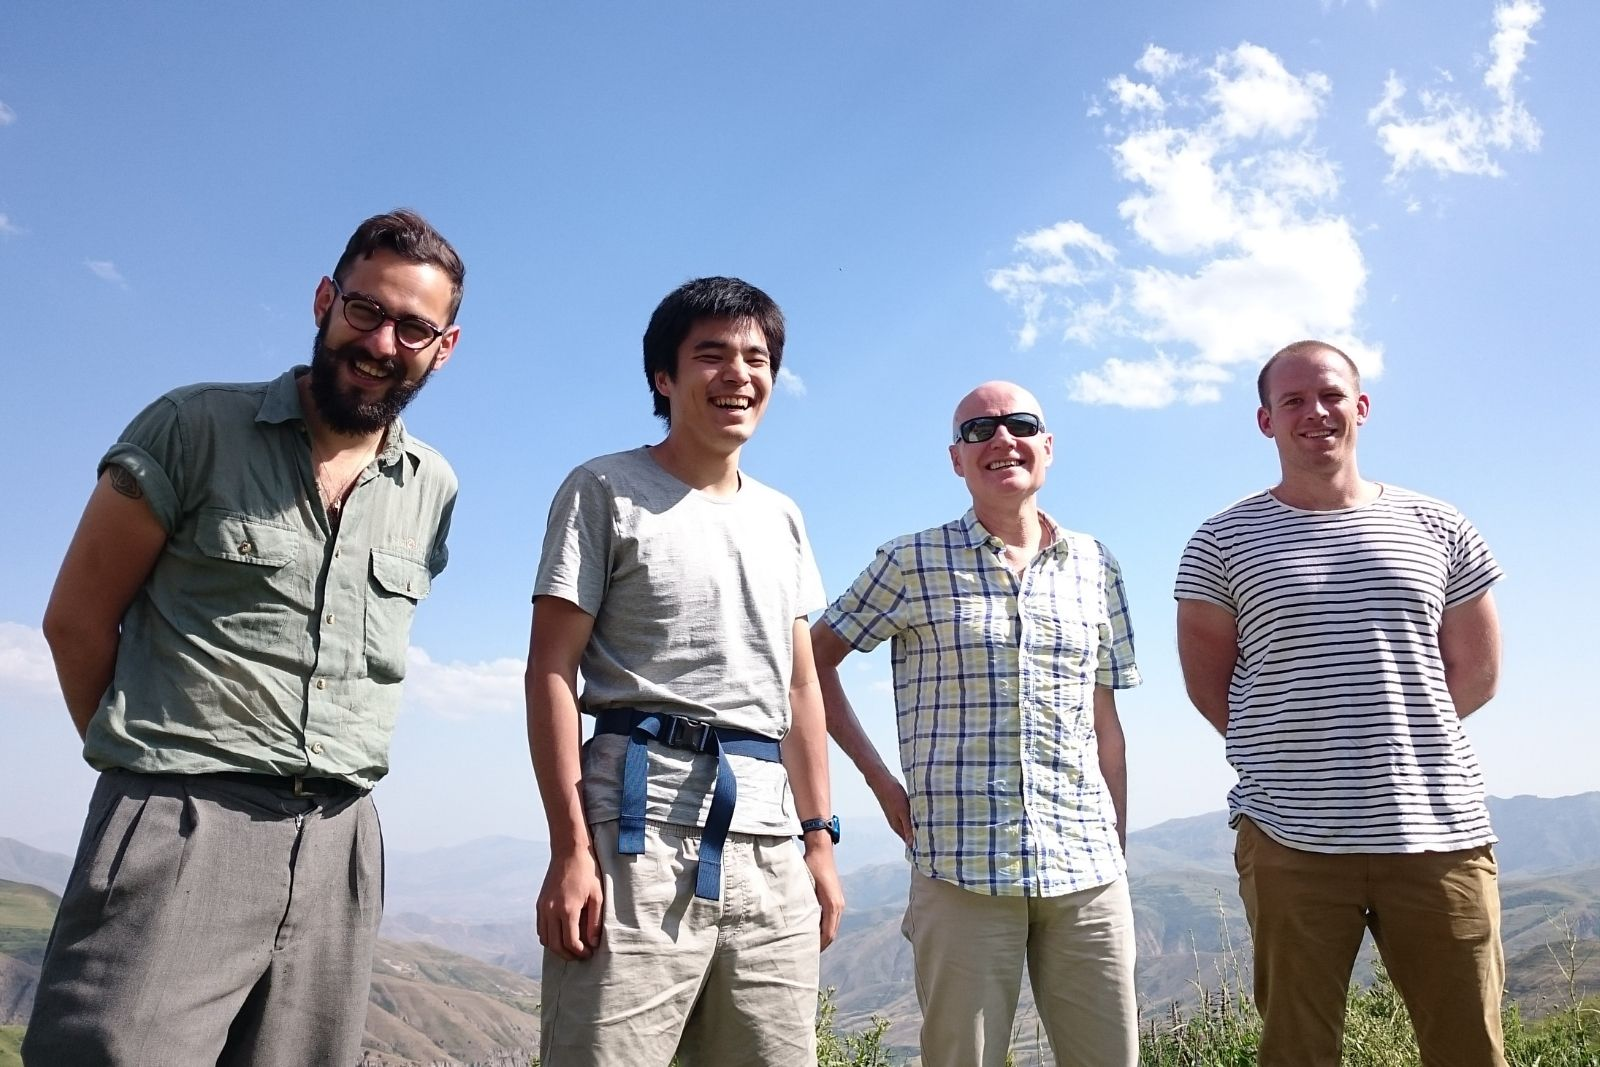 Armenian Studies summer school 2016 participants somewhere in the mountains of Armenia